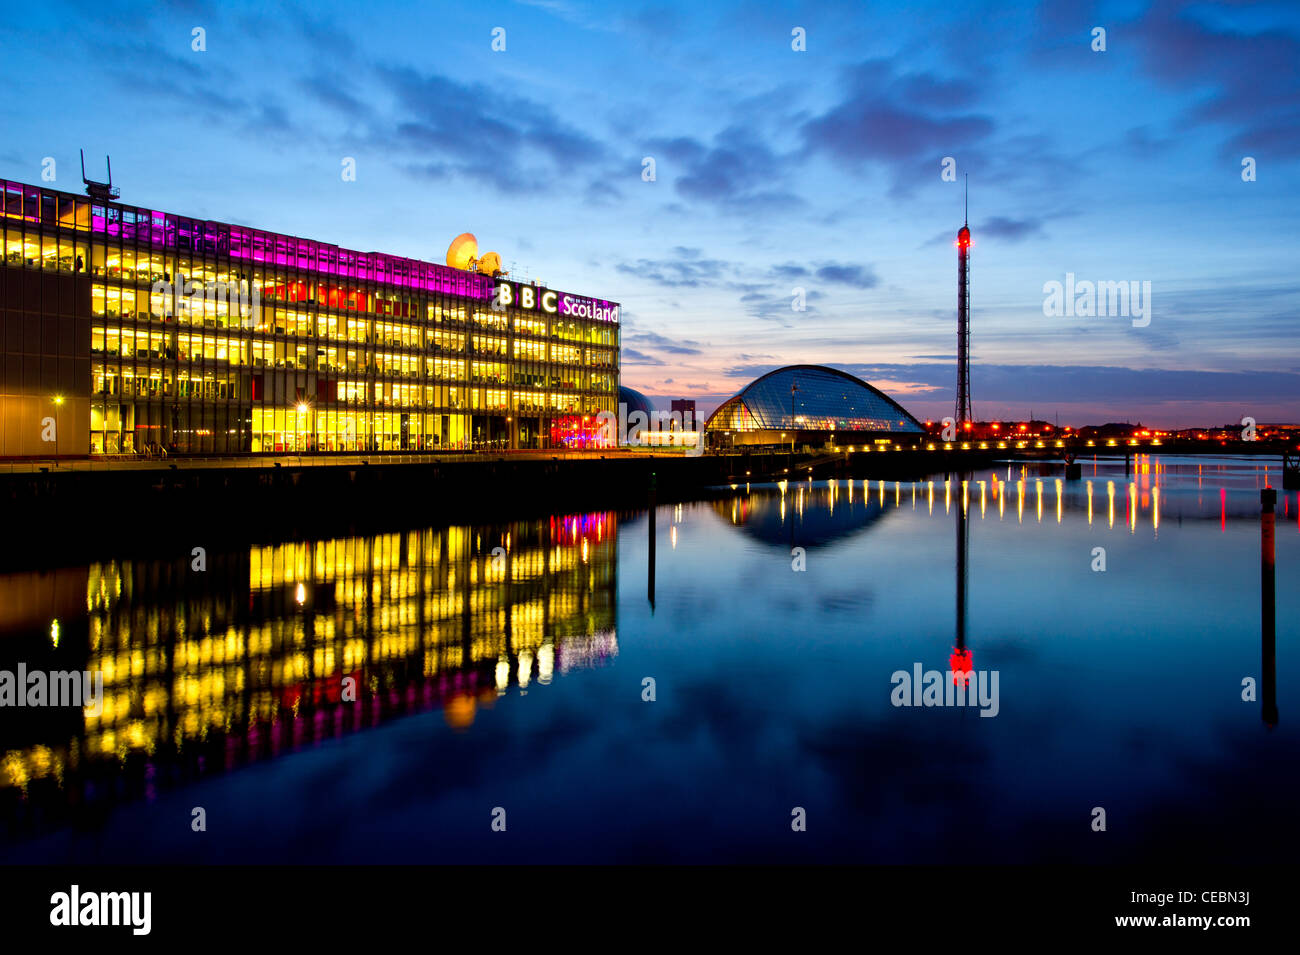 Glasgow Science Centre & Tower with BBC Scotland building, Glasgow, Scotland, UK . - Stock Image